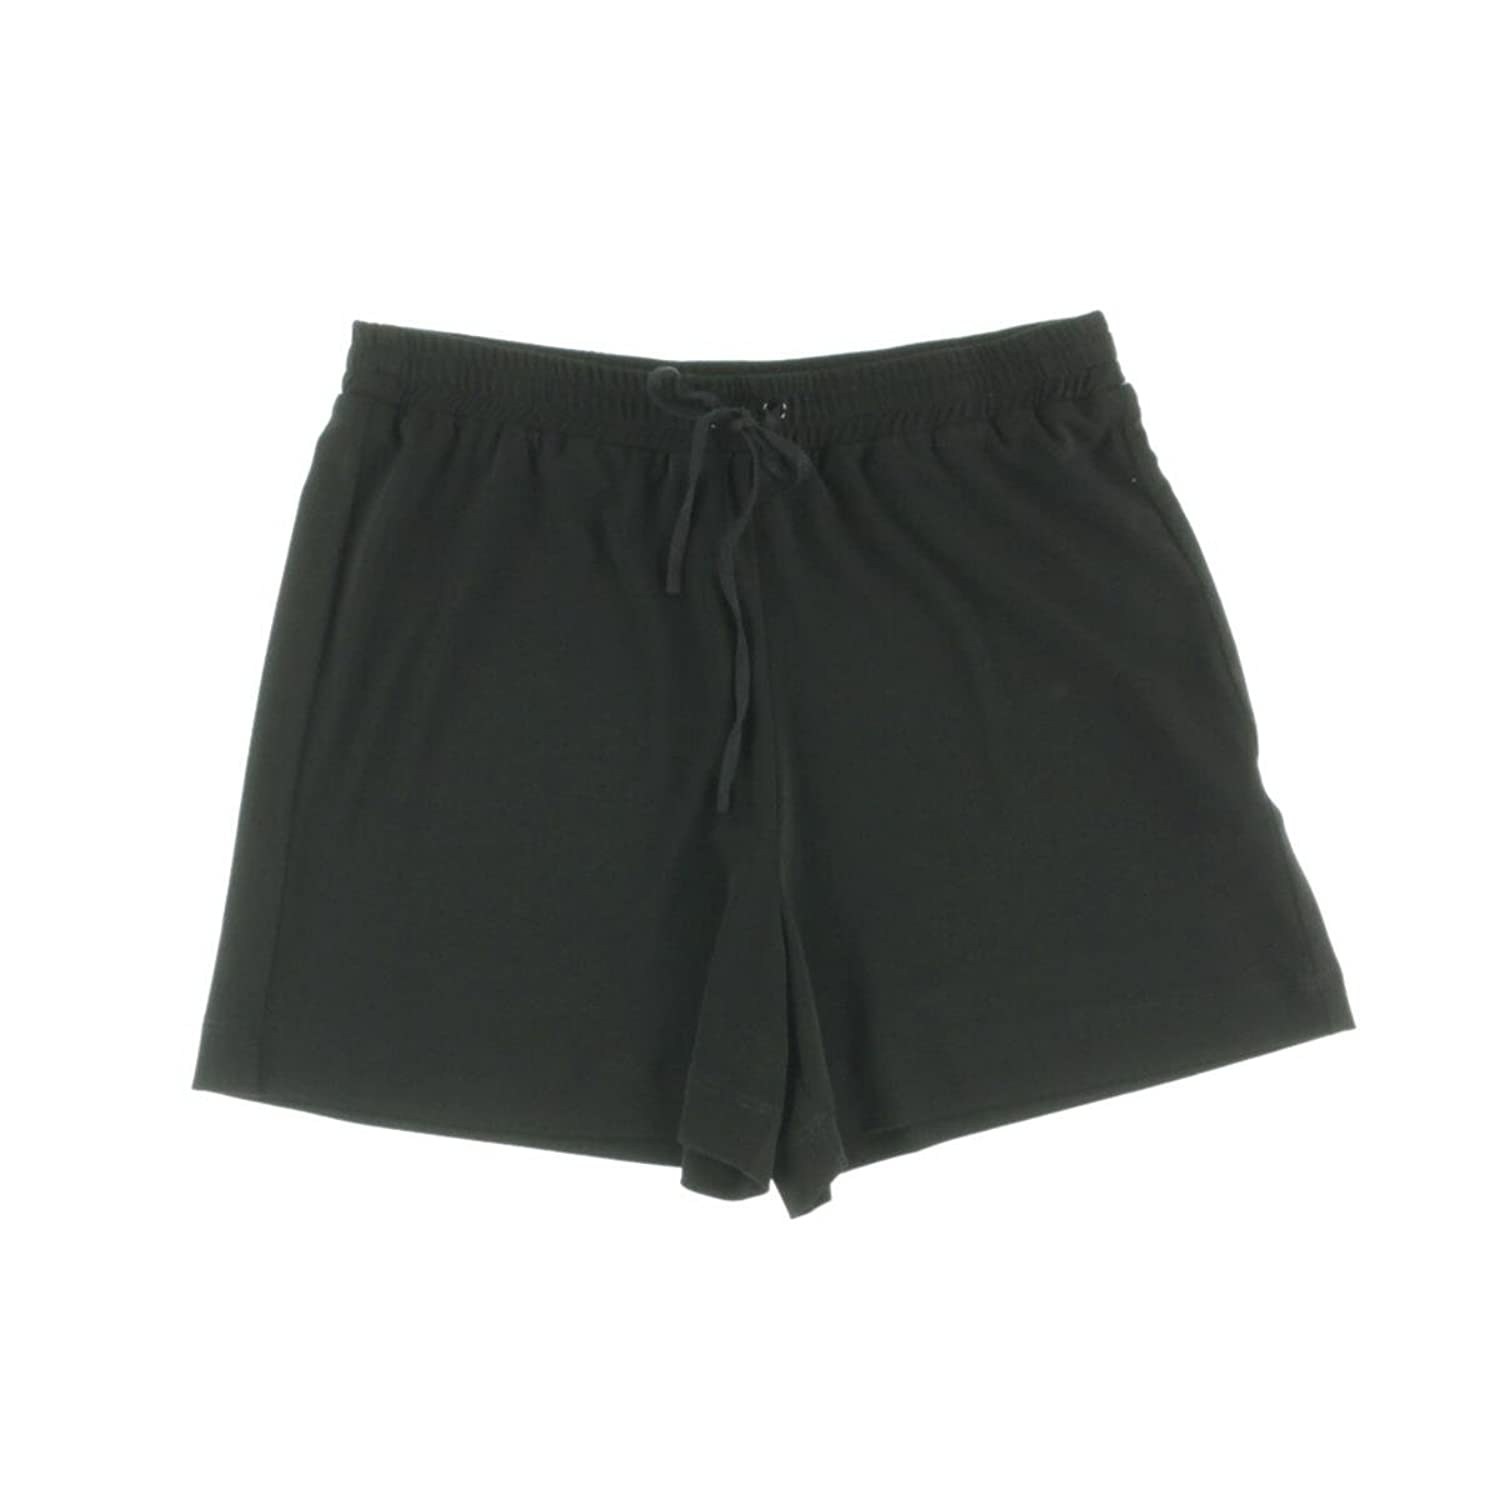 4cce287334a138 Karen Kane Womens Stretch Pull On Casual Shorts 60%OFF - mariokooi.nl